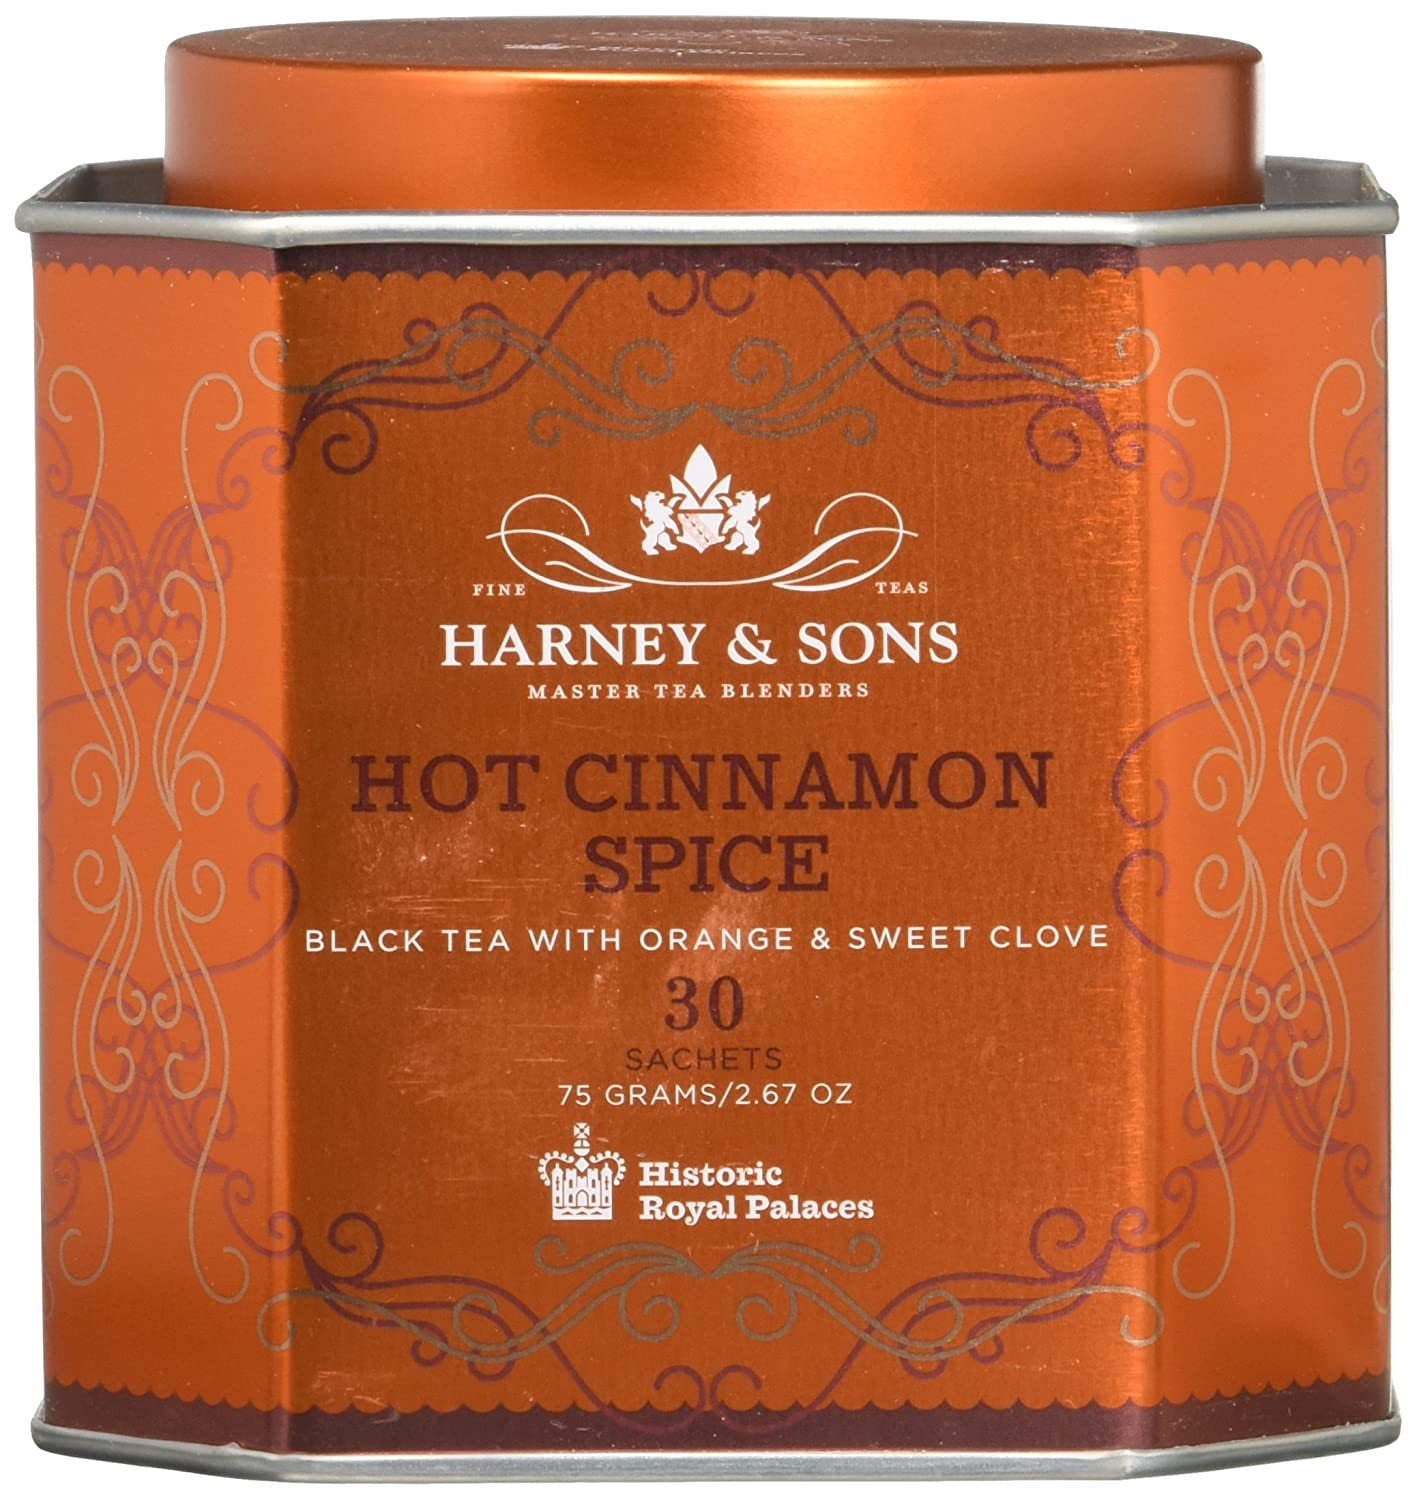 Harney and Sons Tea - Hot Cinnamon Spice - 30 Teabags (2 PK) Harney & Sons SYNCHKG074157